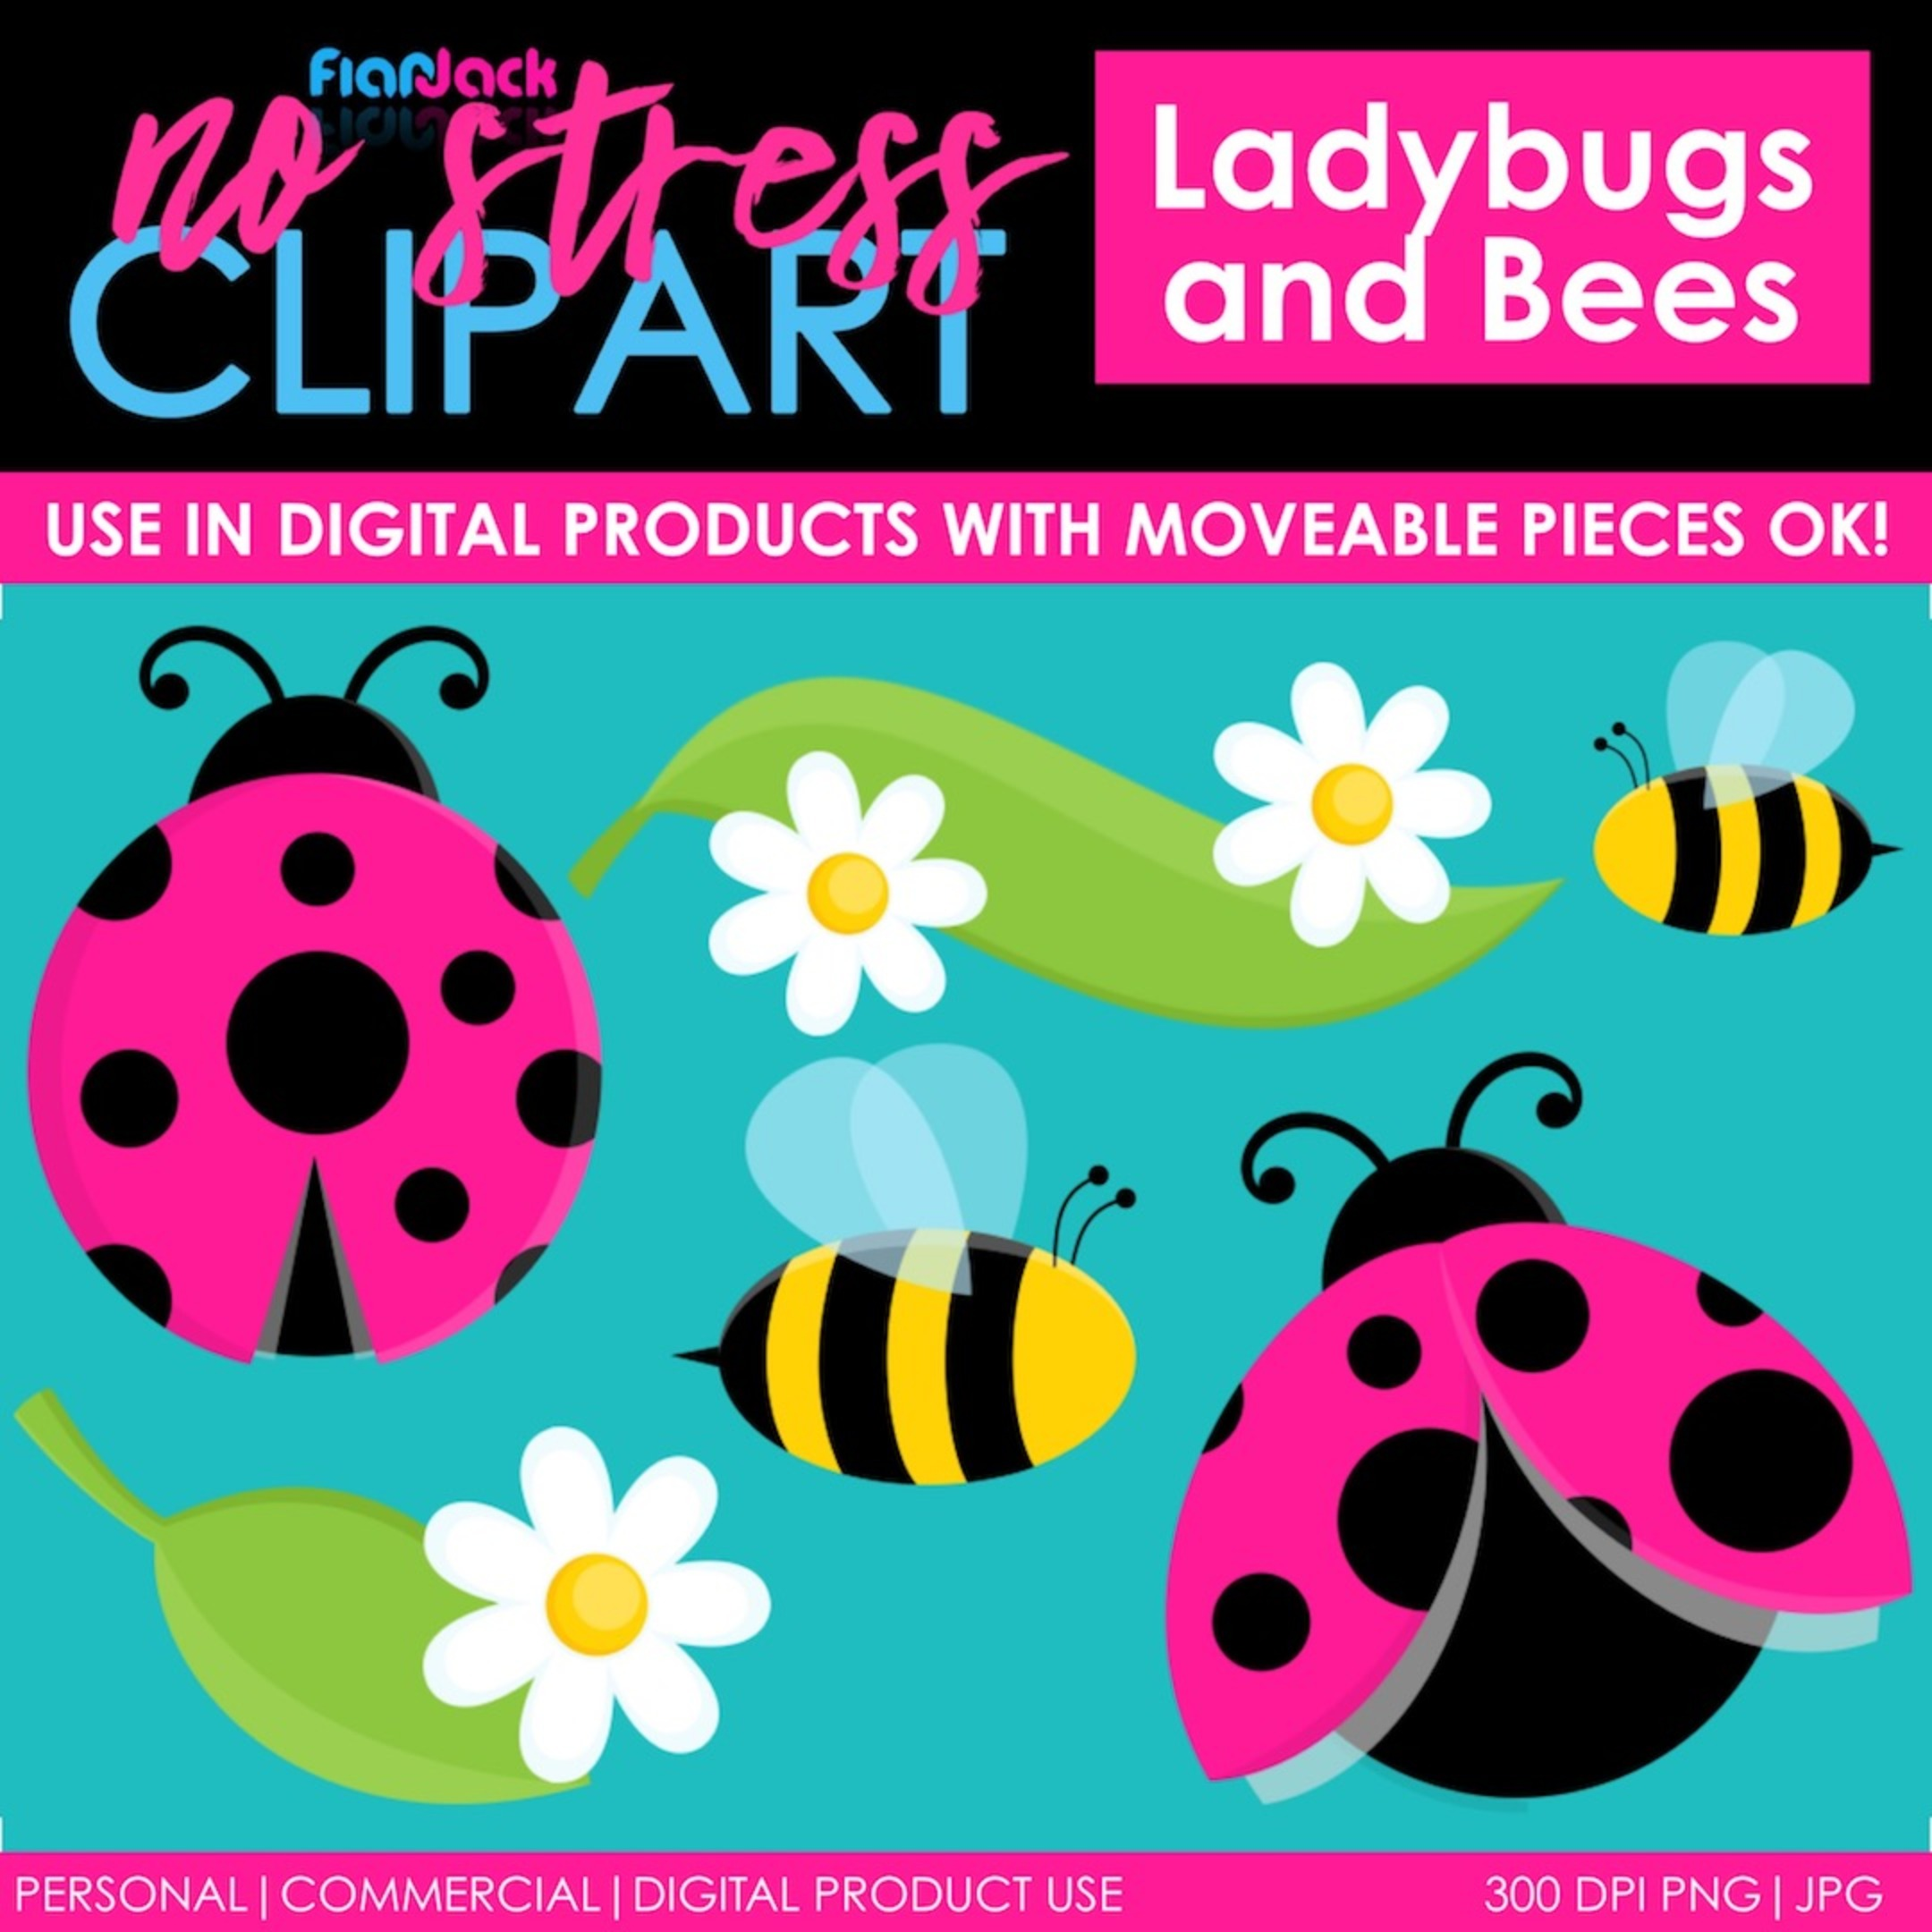 Ladybugs and Bees